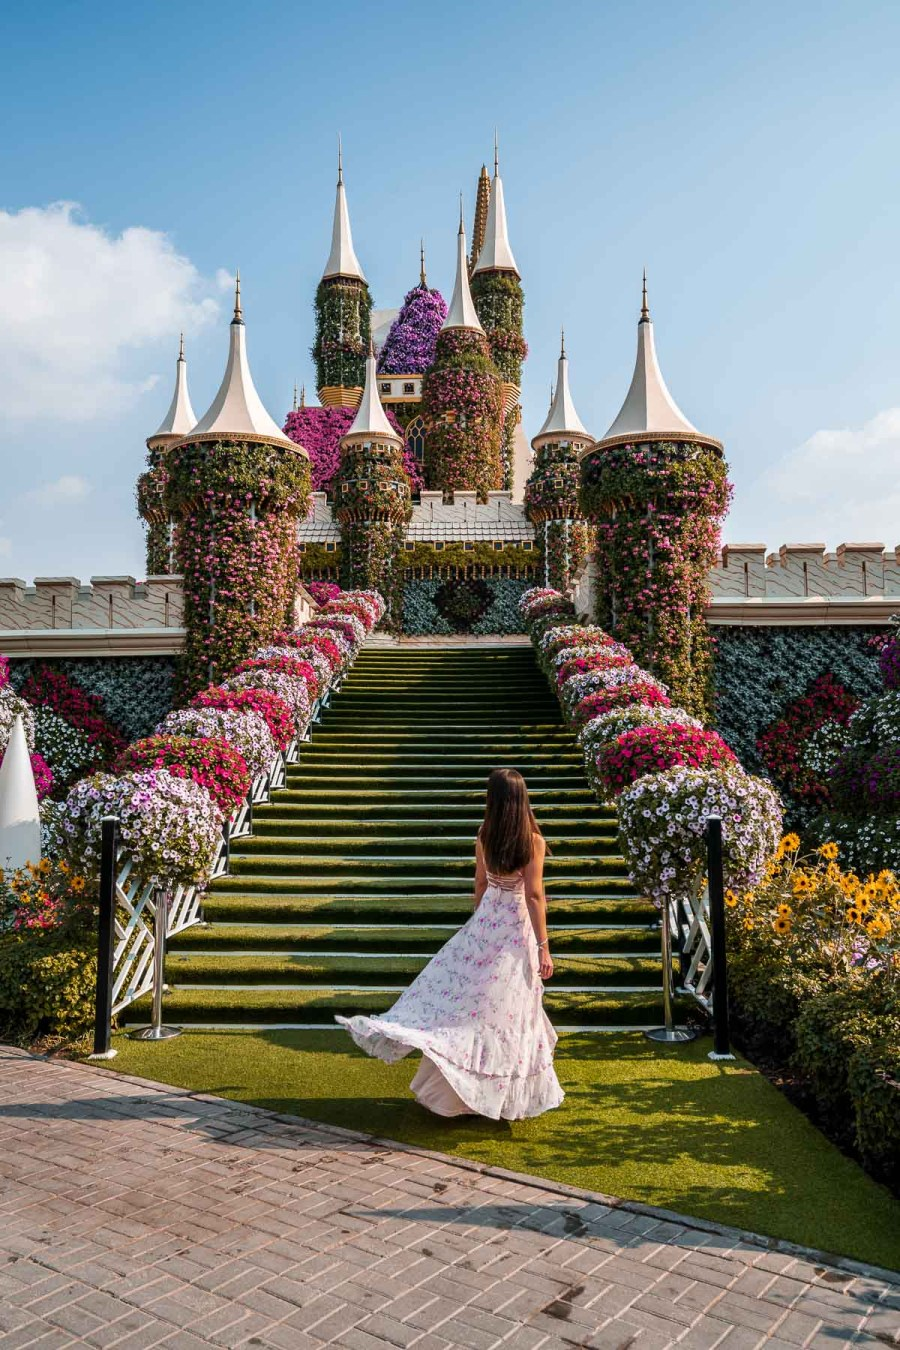 Girl in pink floral dress standing in front of a castle made of flowers in the Dubai MIracle Garden